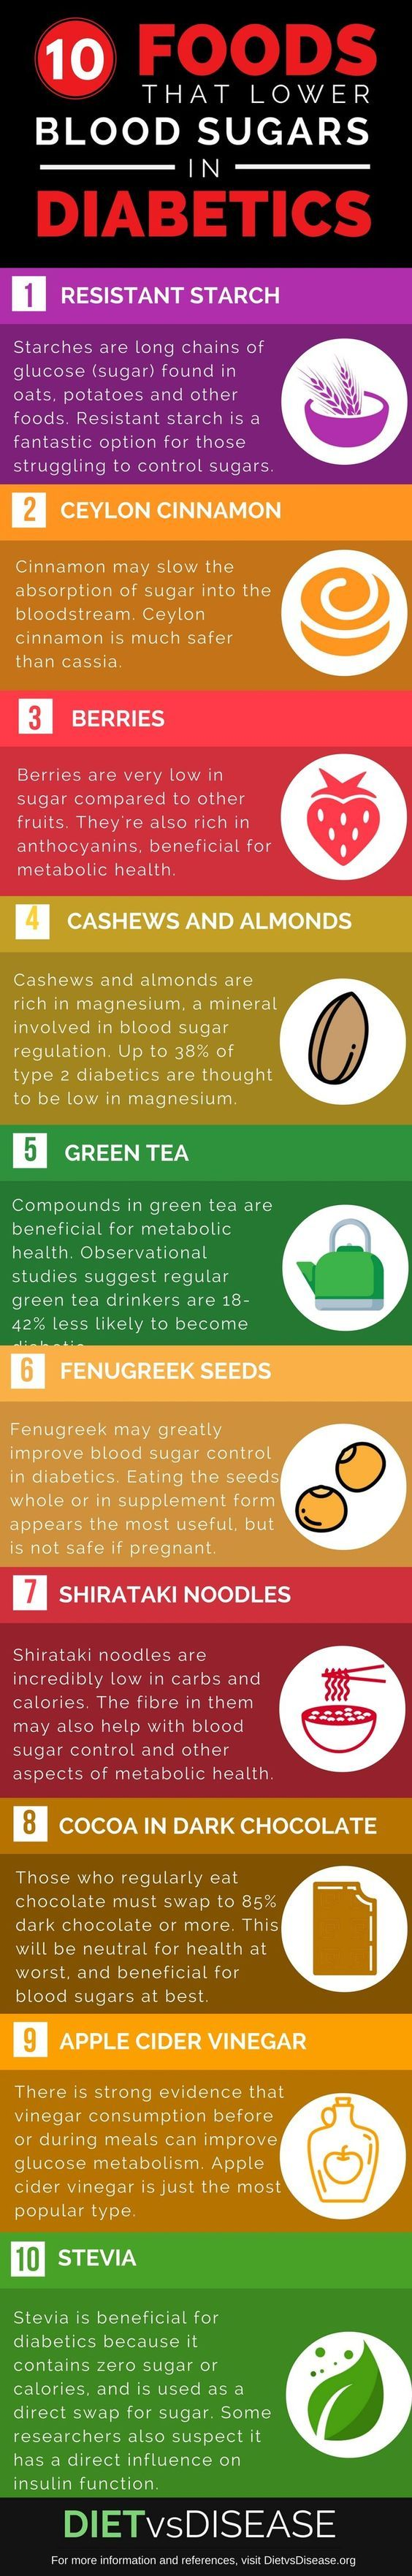 This post looks at 10 of the best foods and supplements to lower blood sugars in diabetics, based on current research.